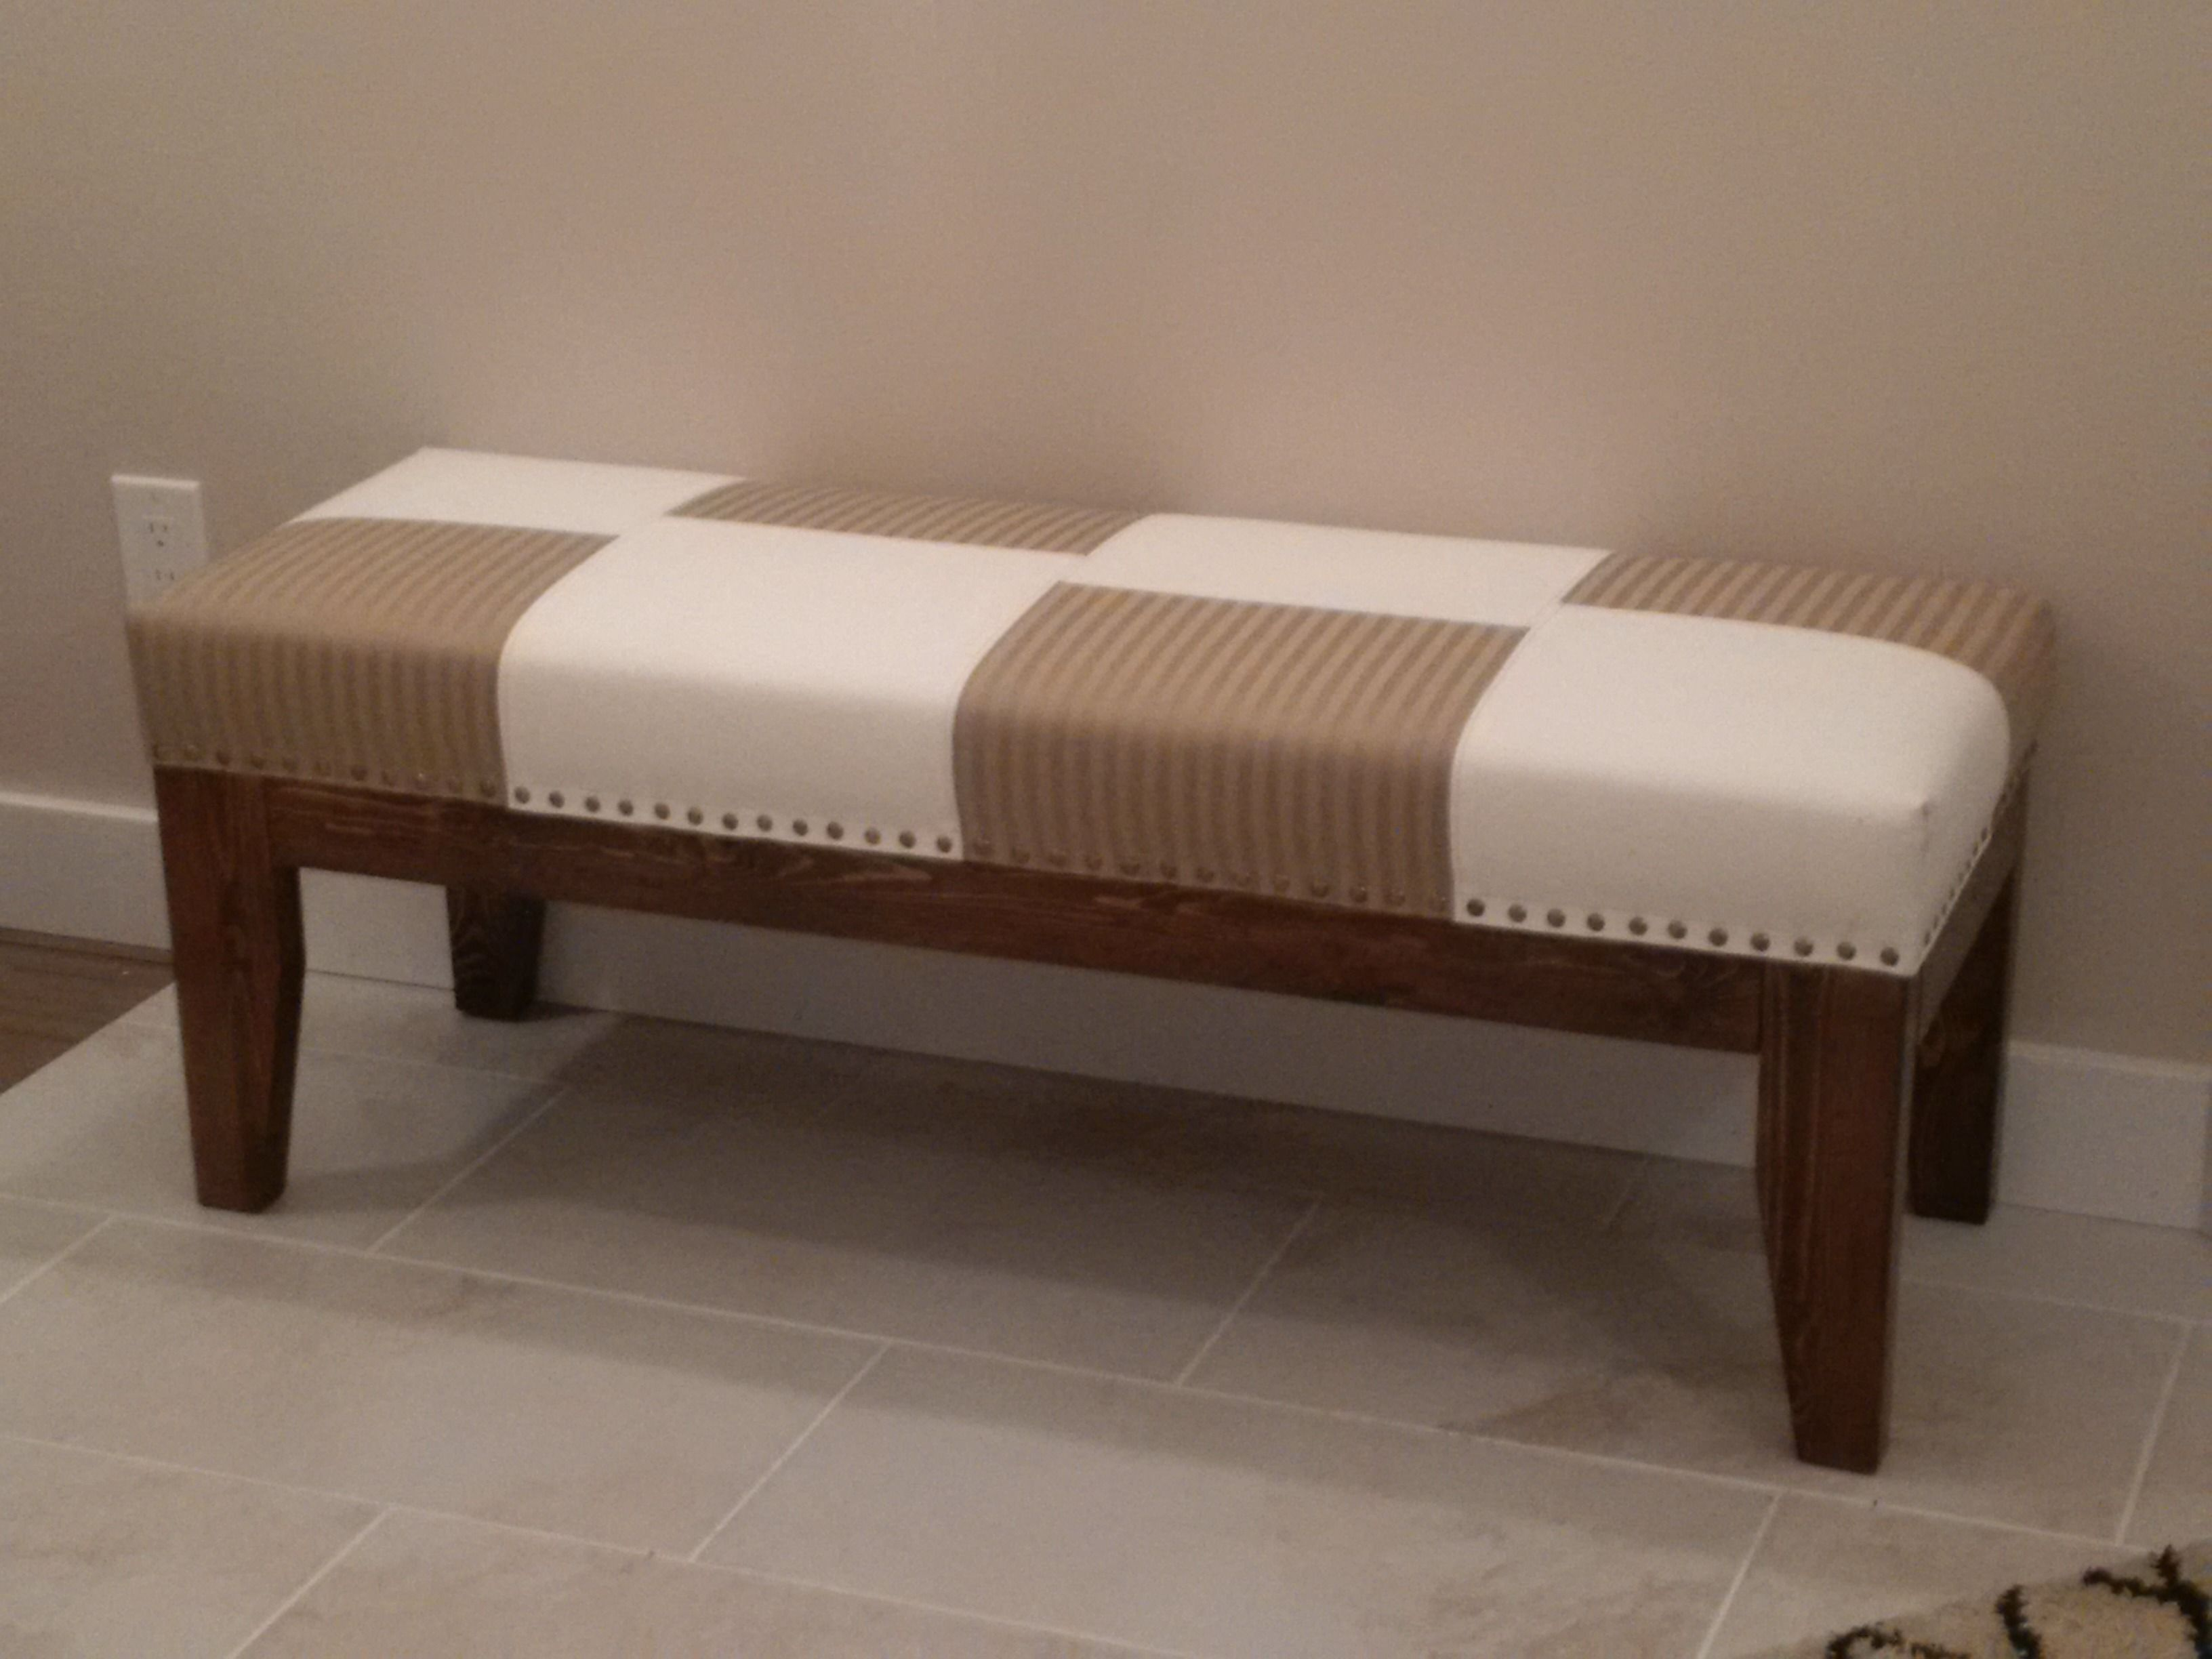 Outstanding Ana White Easiest Upholstered Bench Diy Projects Entry Cjindustries Chair Design For Home Cjindustriesco